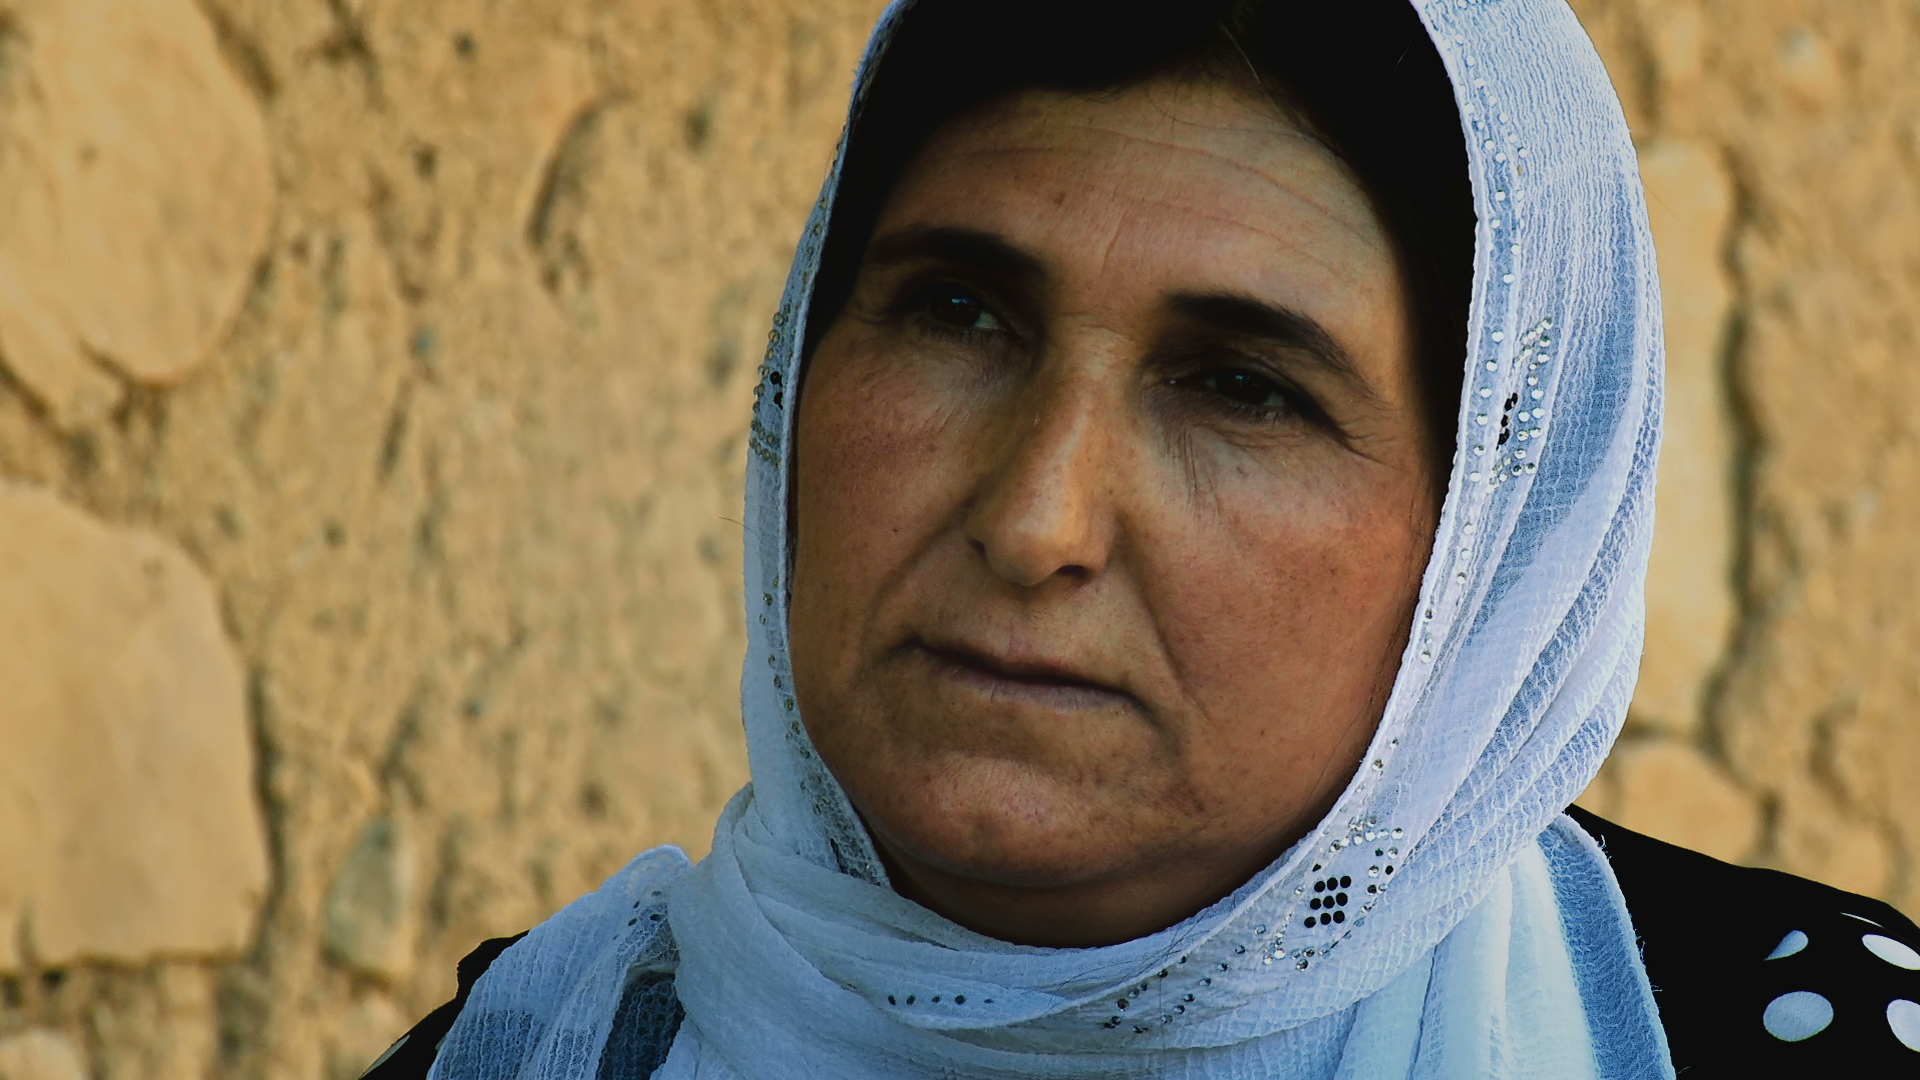 Despite a chemical attack on Askar in May 1988, SAEDA OMAR RASUL stayed behind in her village whilst many fled. She was pregnant and had already lost one child in an attack, but with animals and birds dying around her she escaped to the nearby mountains.